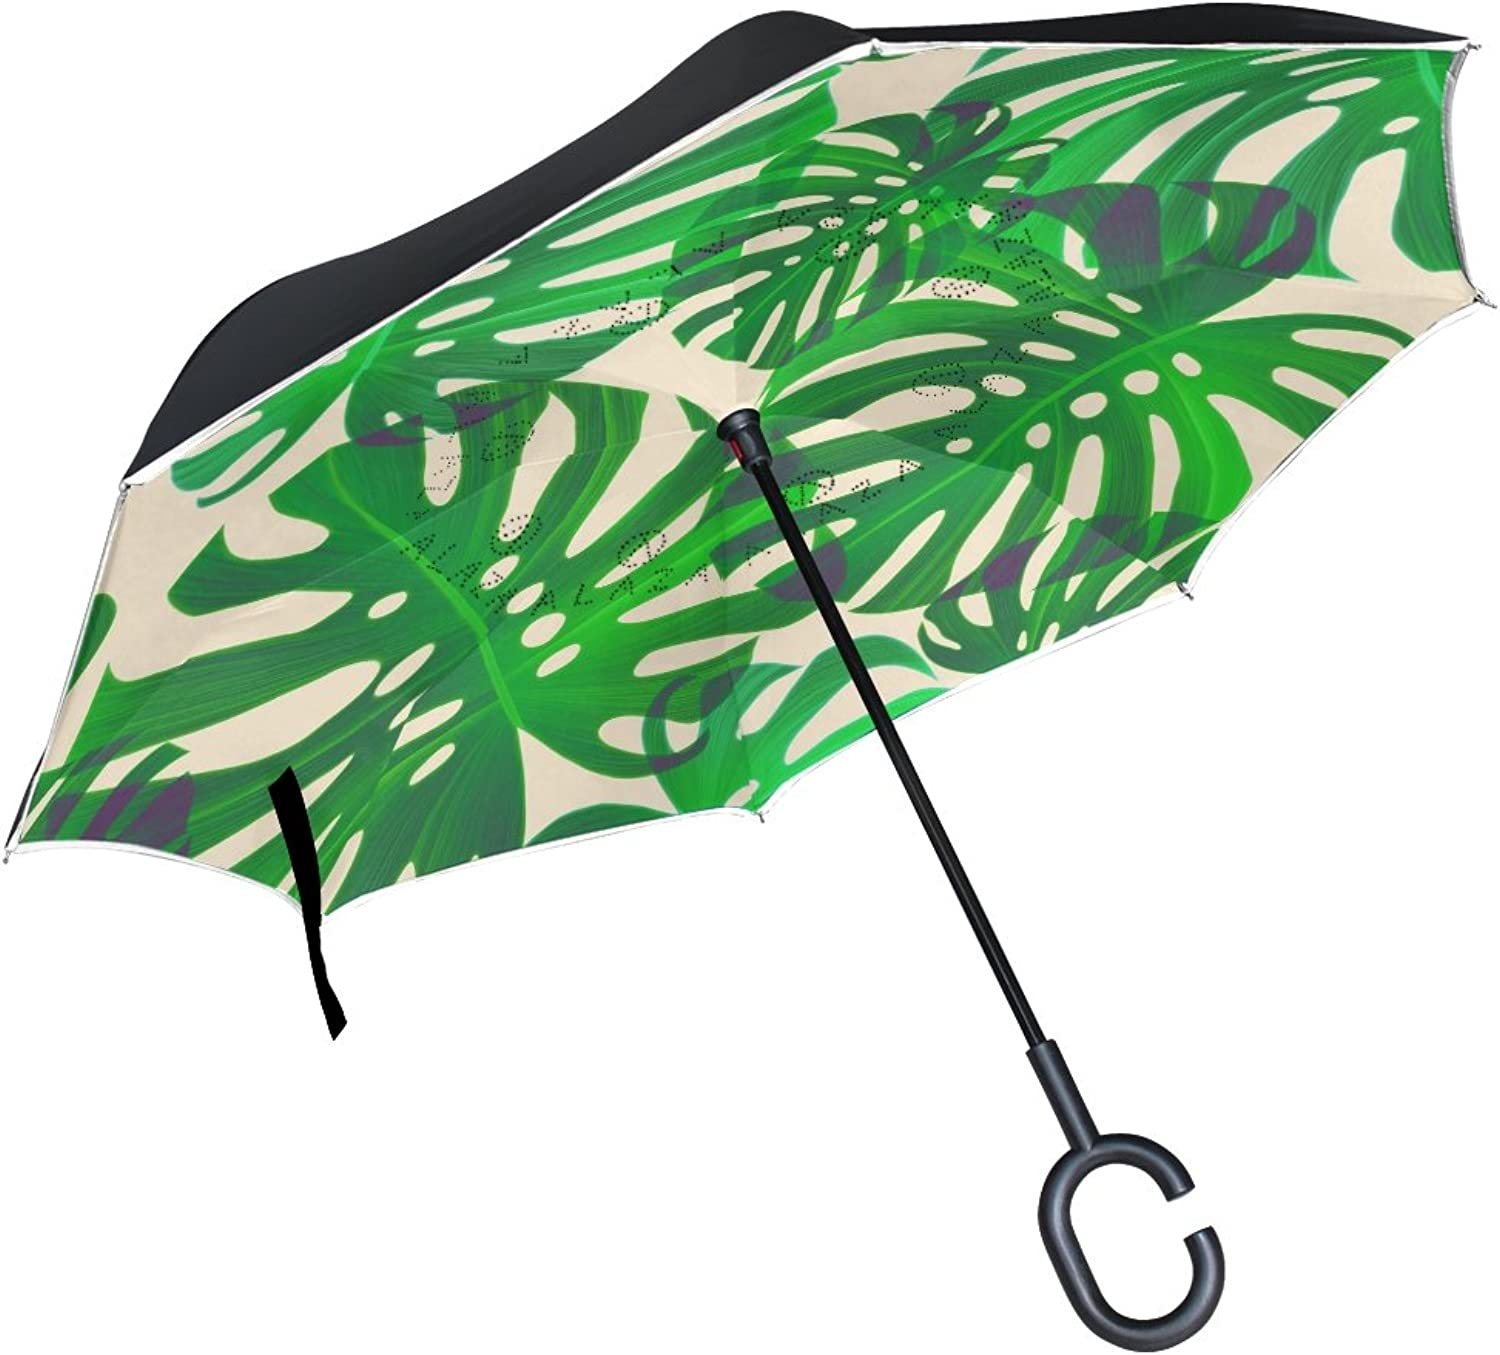 FOLPPLY Ingreened Umbrella Tropical Palm Pattern,Double Layer Reverse Umbrella Waterproof for Car Rain Outdoor with CShaped Handle